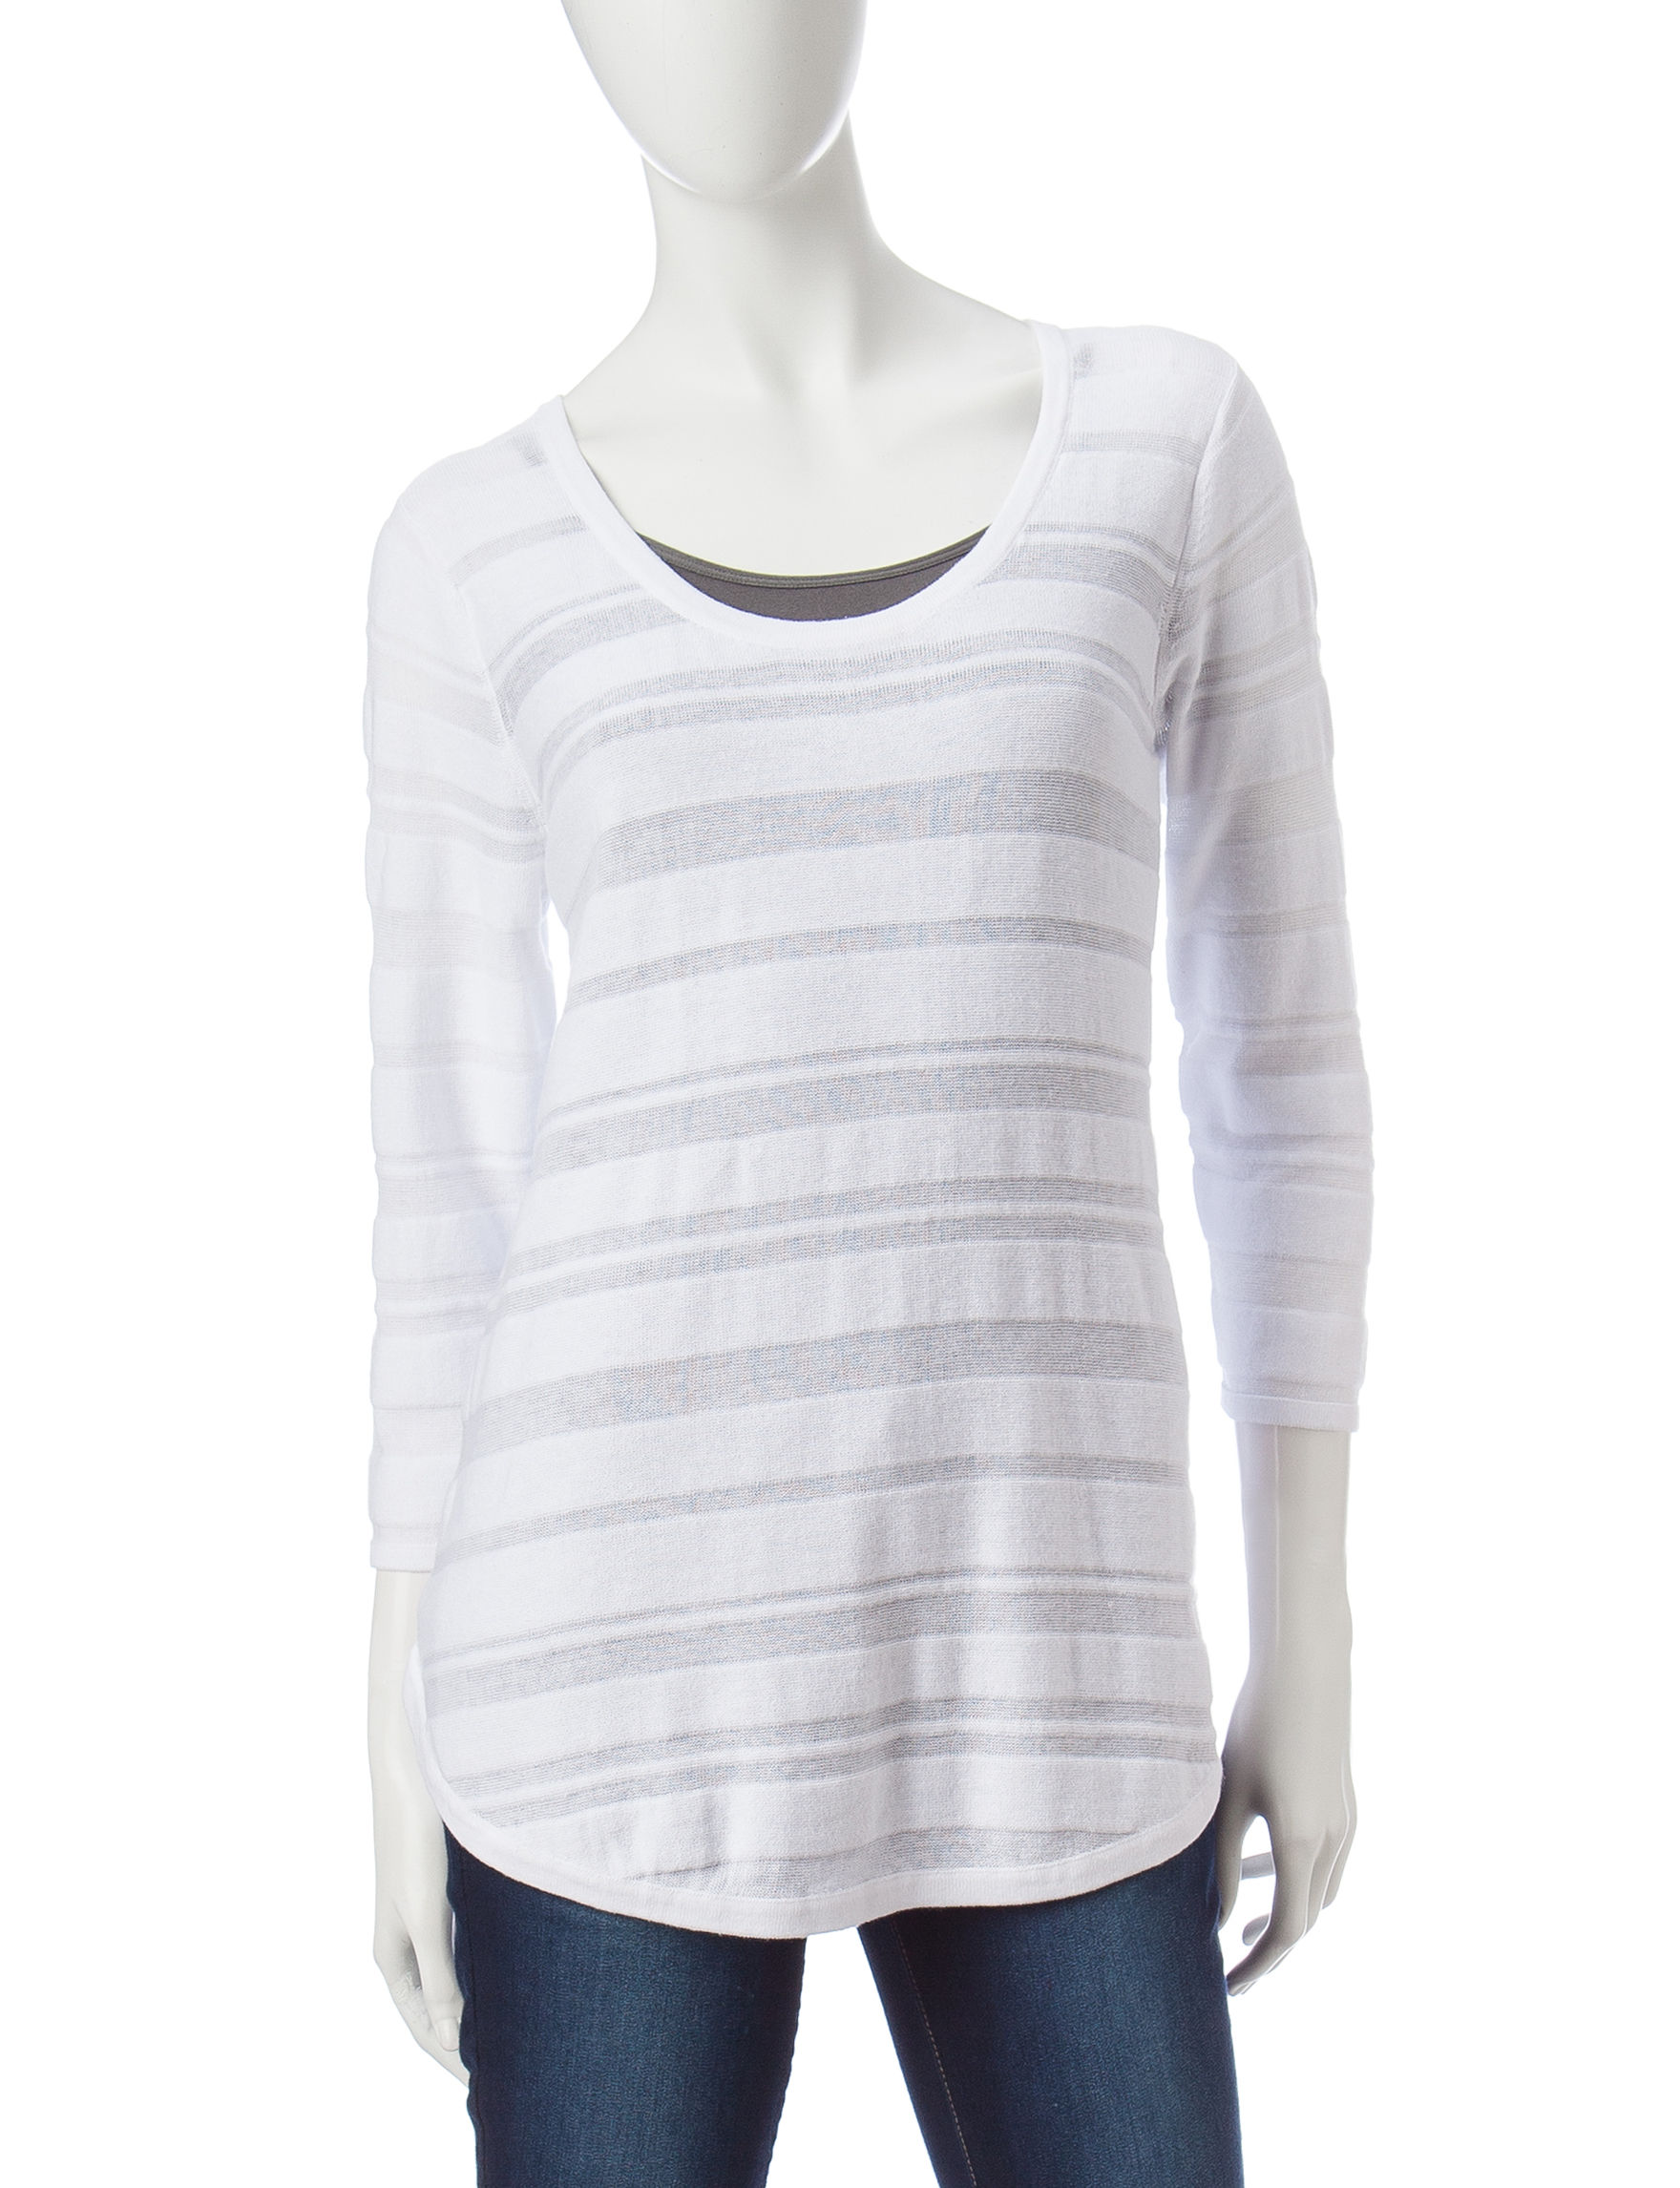 Hannah White Pull-overs Sweaters